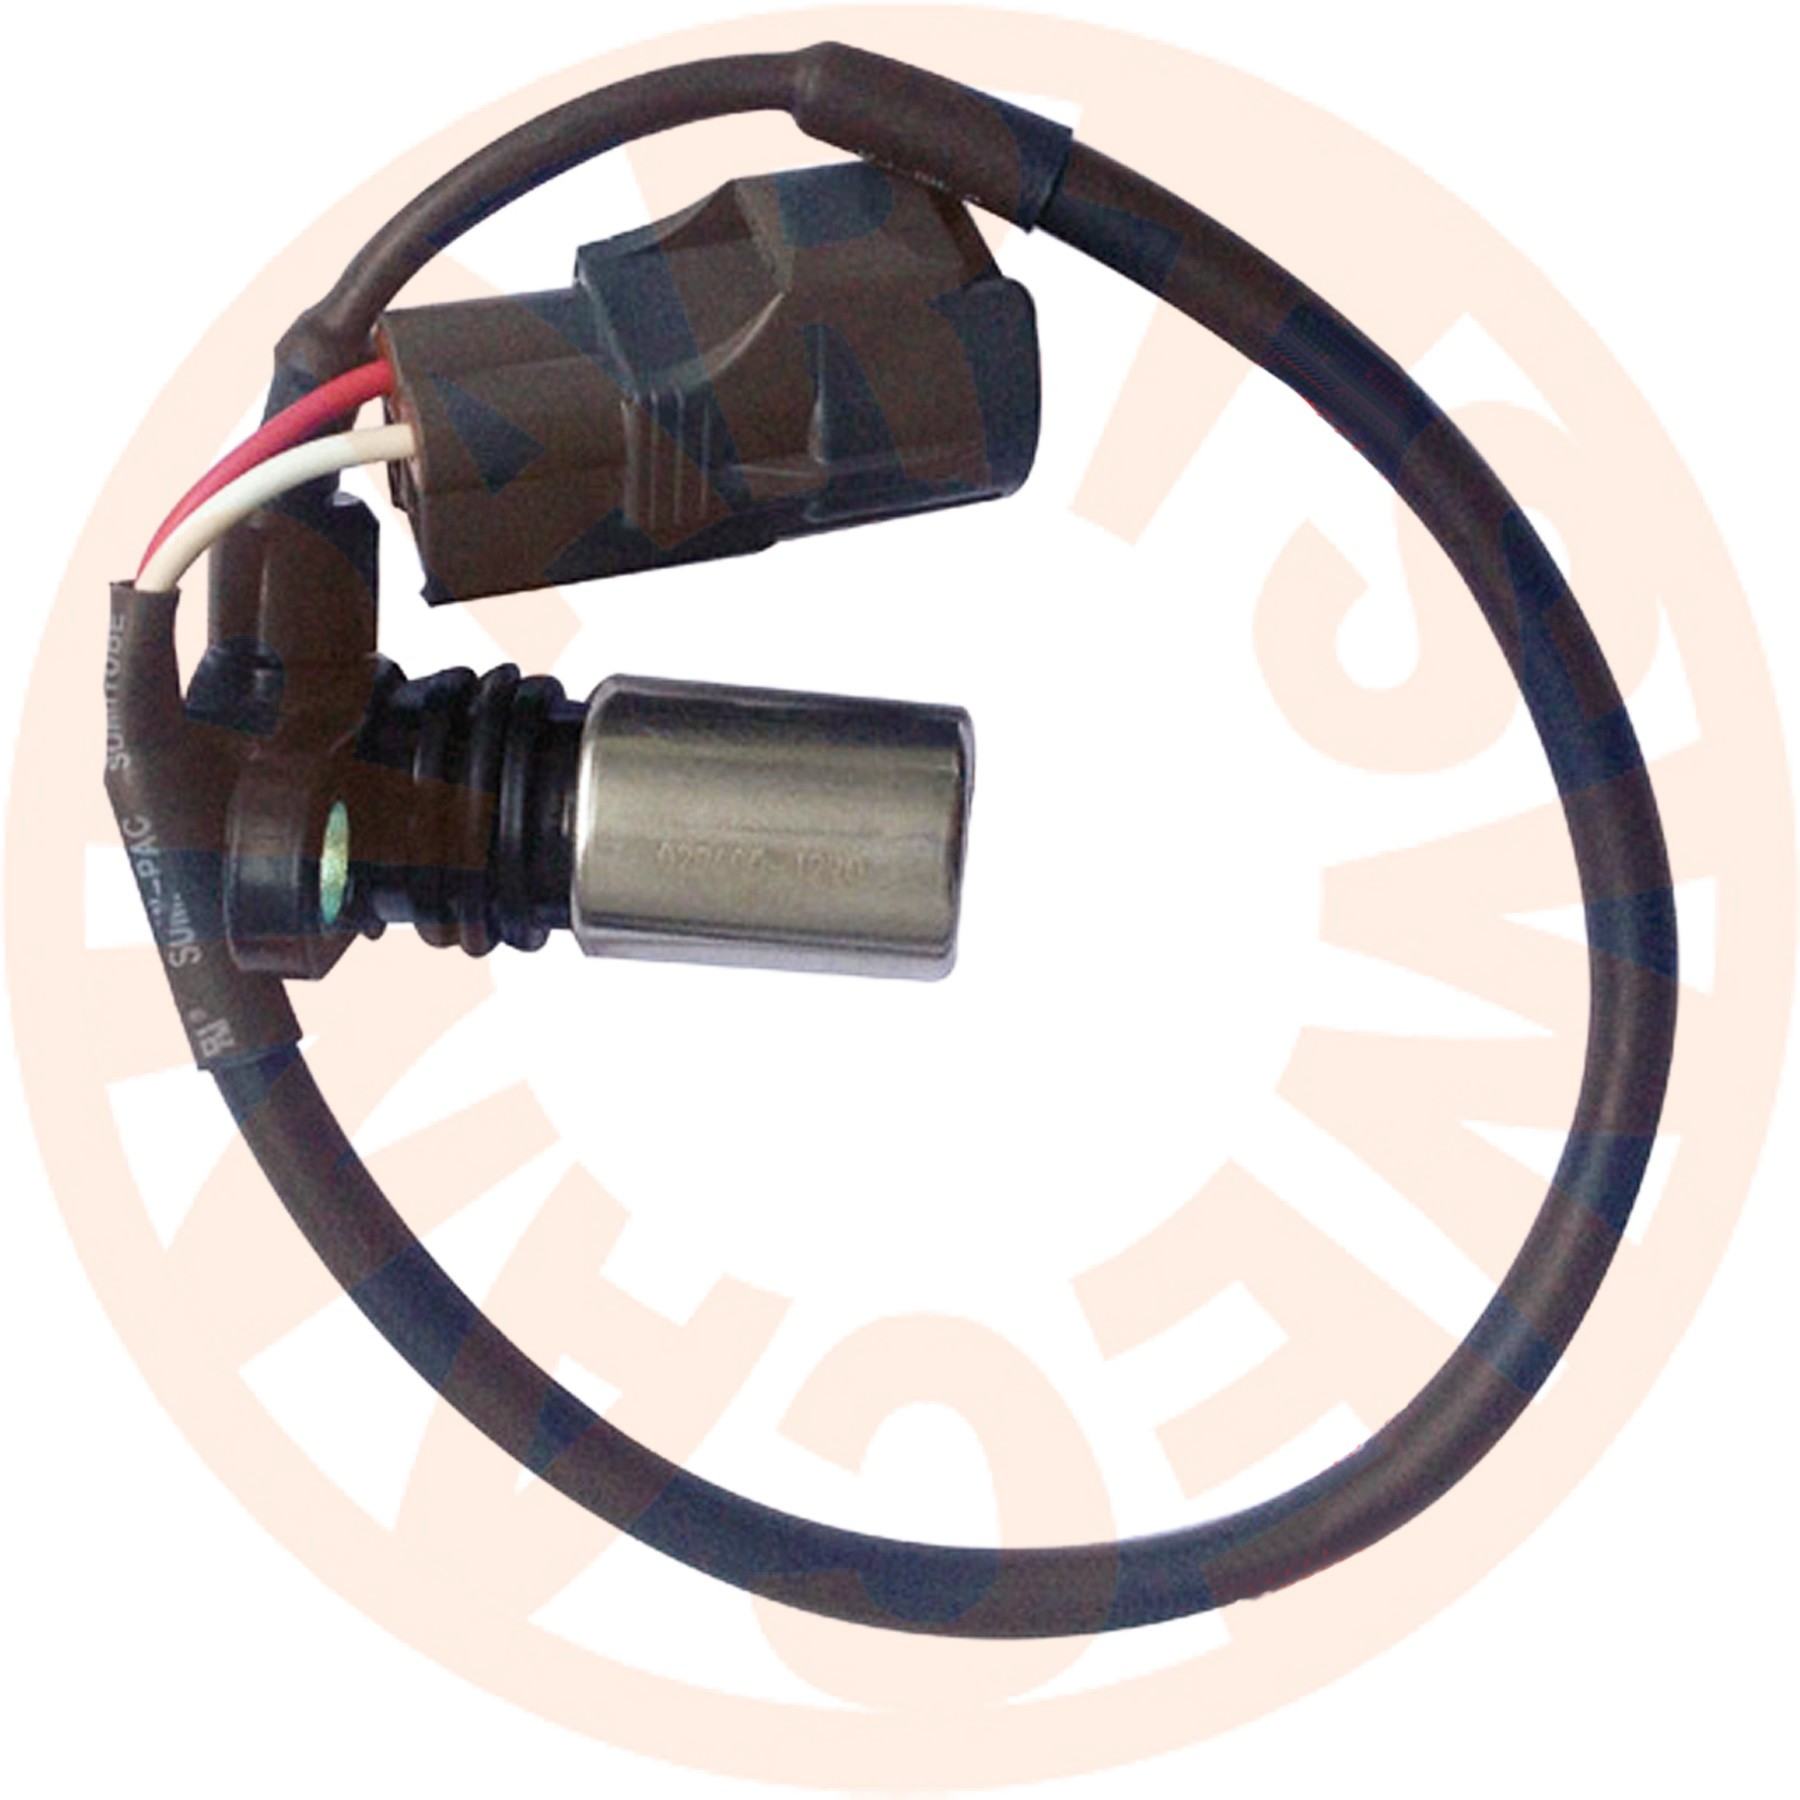 CRANKSHAFT POSITION SENSOR ISUZU 4HK1 6HK1 ENGINE HITACHI EXCAVATOR  AFTERMARKET PARTS 8-97306113-1